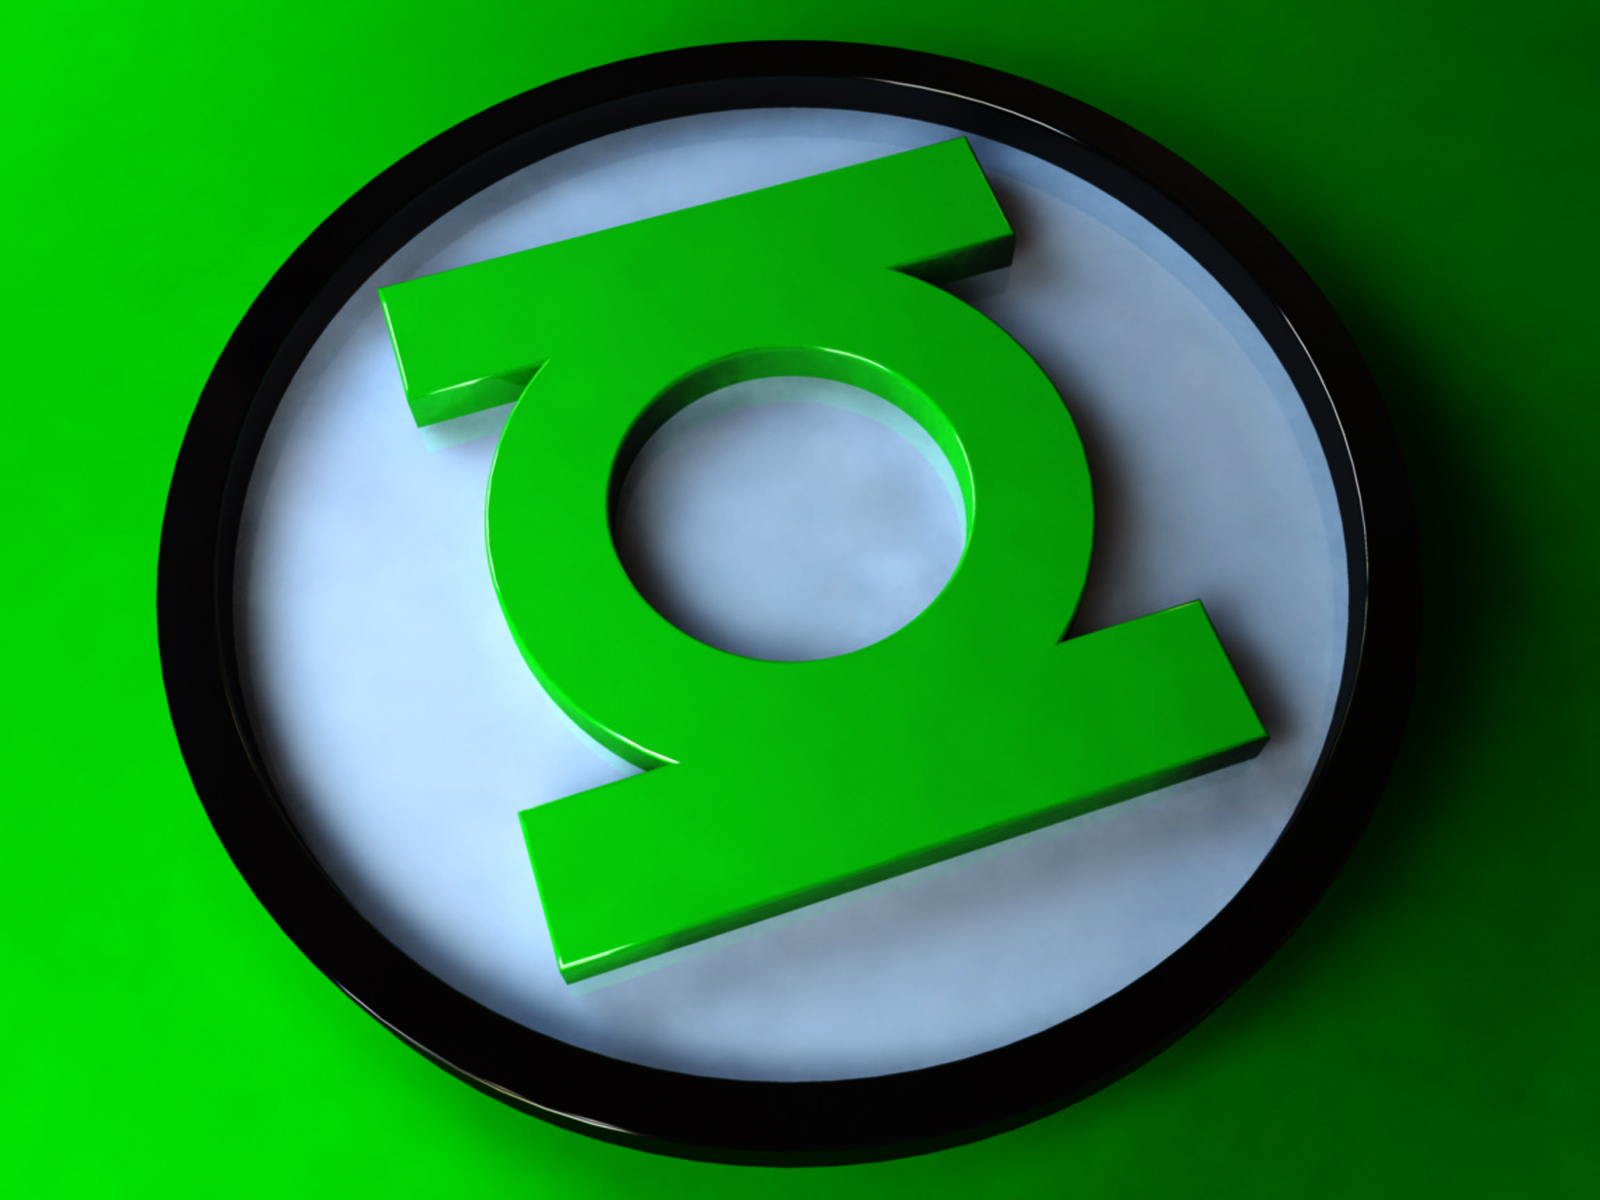 Green Lantern Comics Logo Minimal HD Wallpaperswallpapers 1600x1200